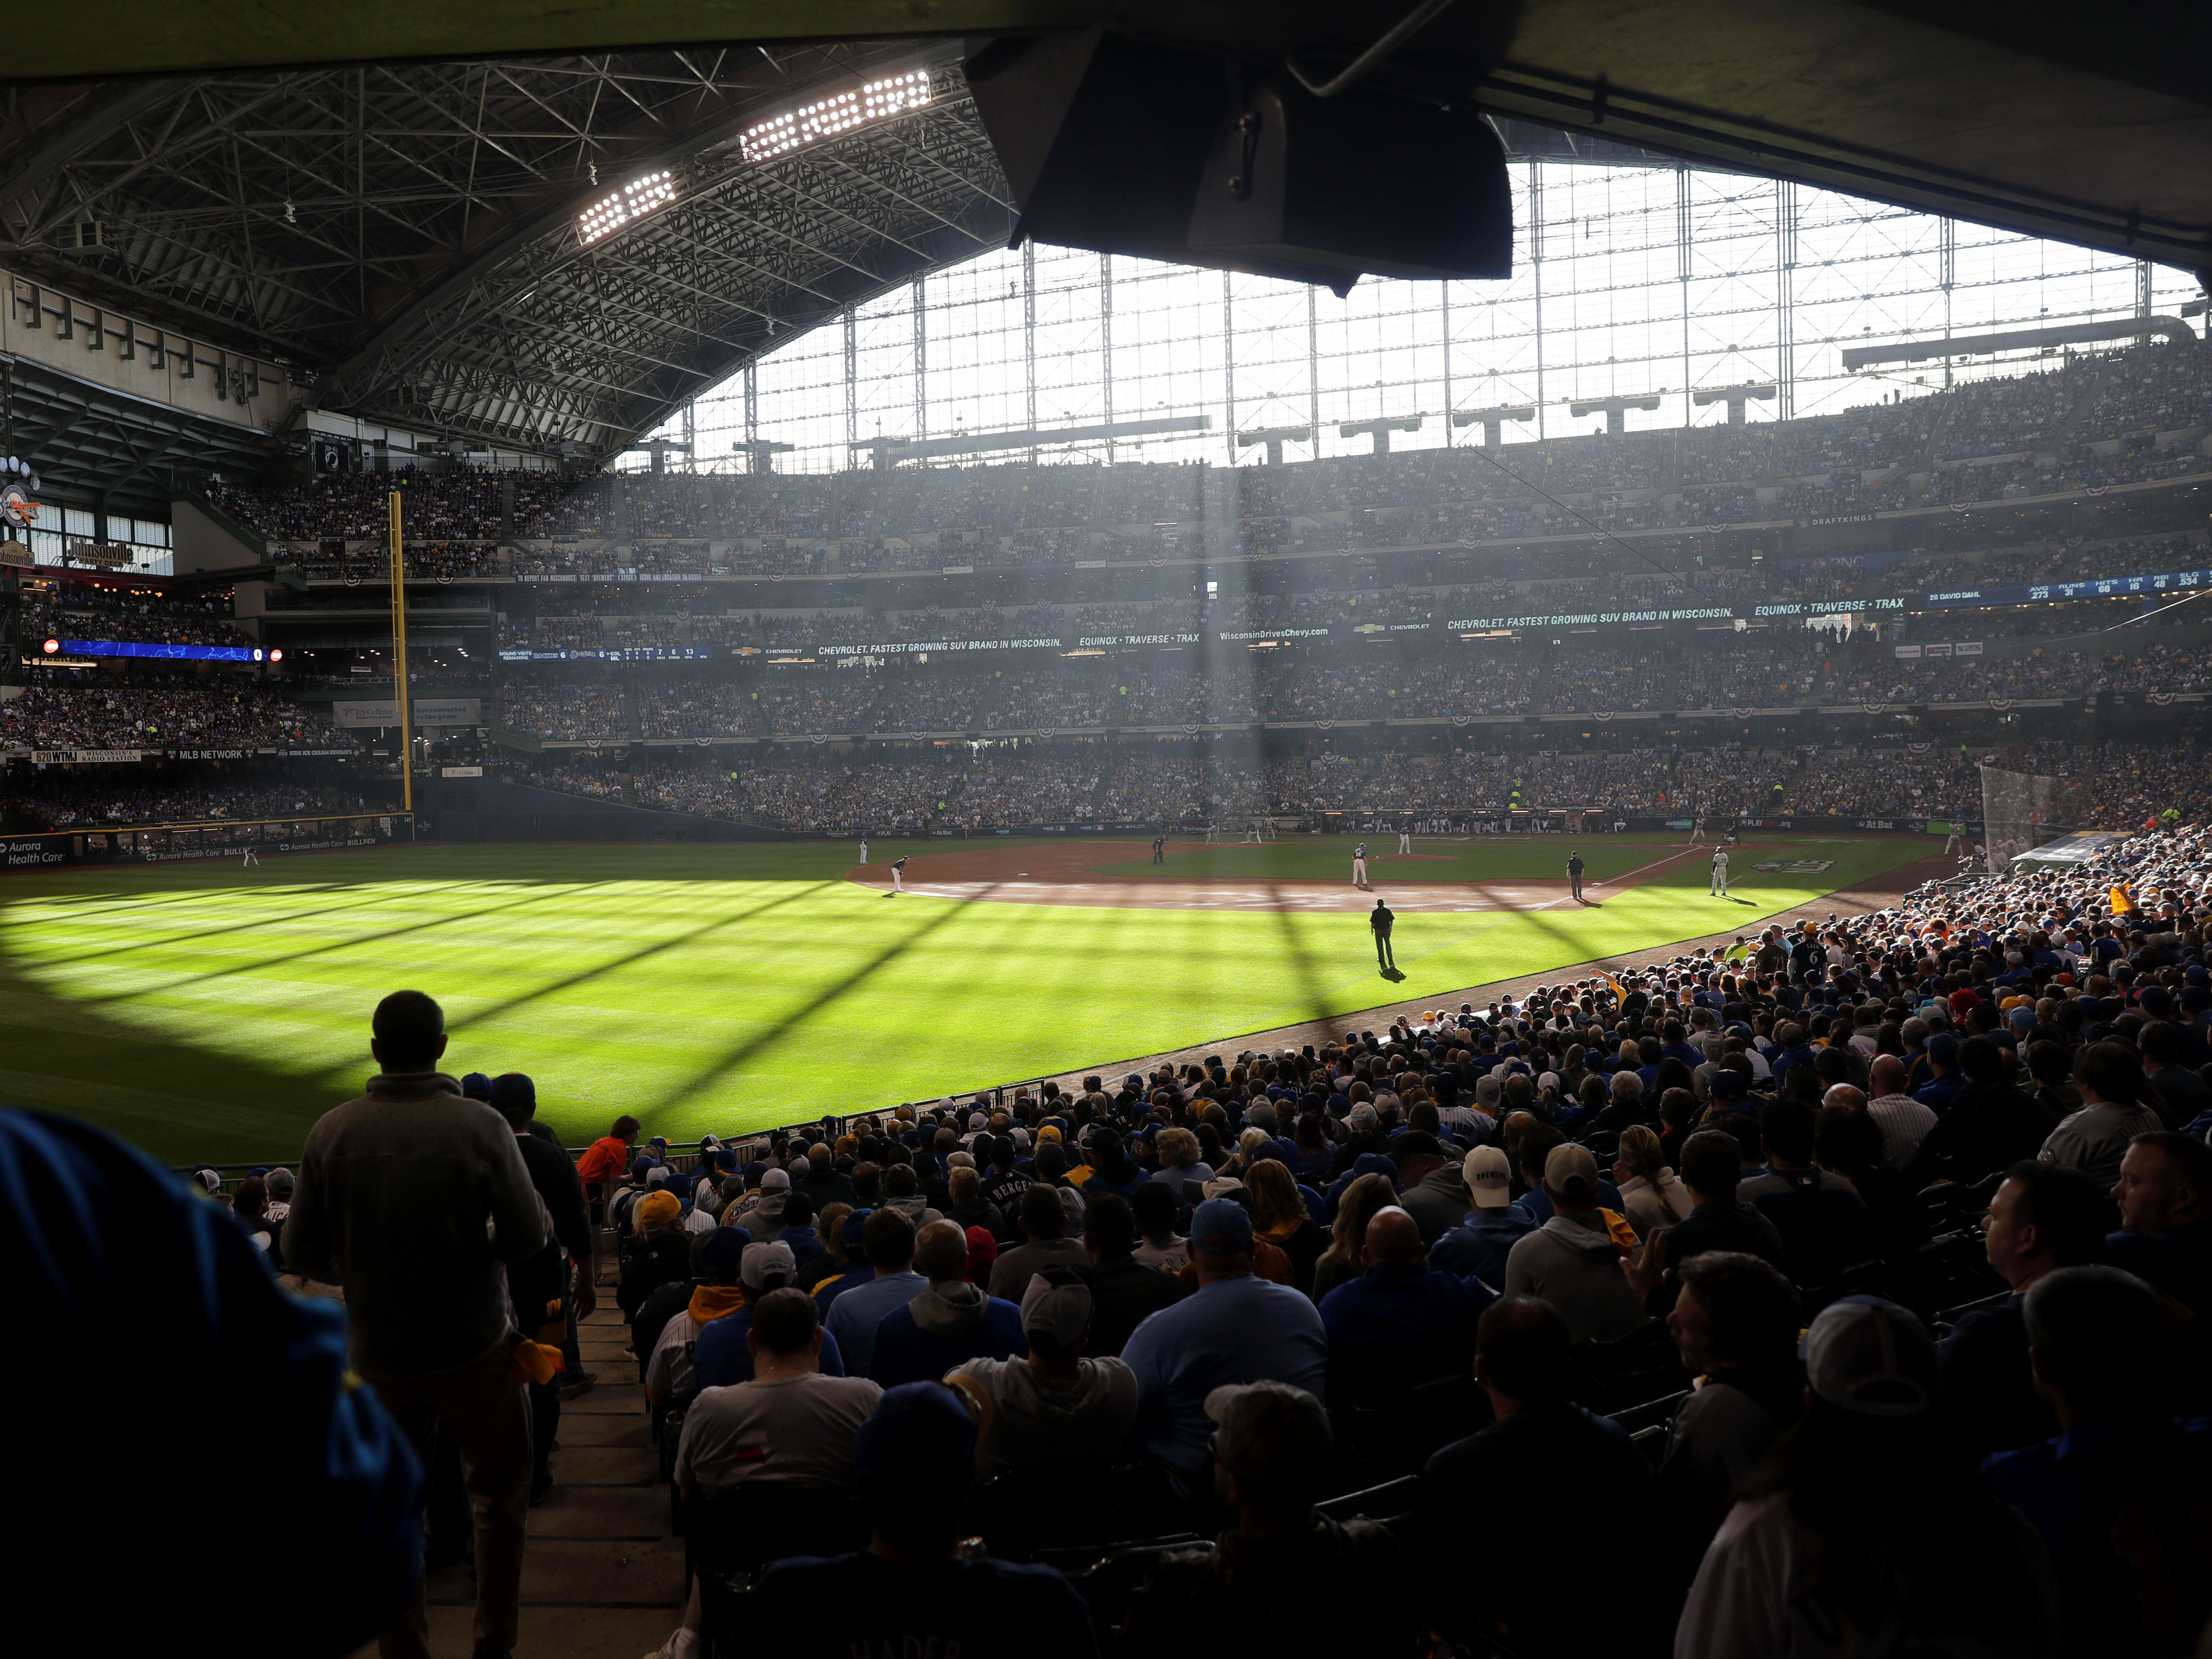 Sunlight shines on the field during the Milwaukee Brewers' National League Divisional Series game against the Colorado Rockies on Thursday at Miller Park.